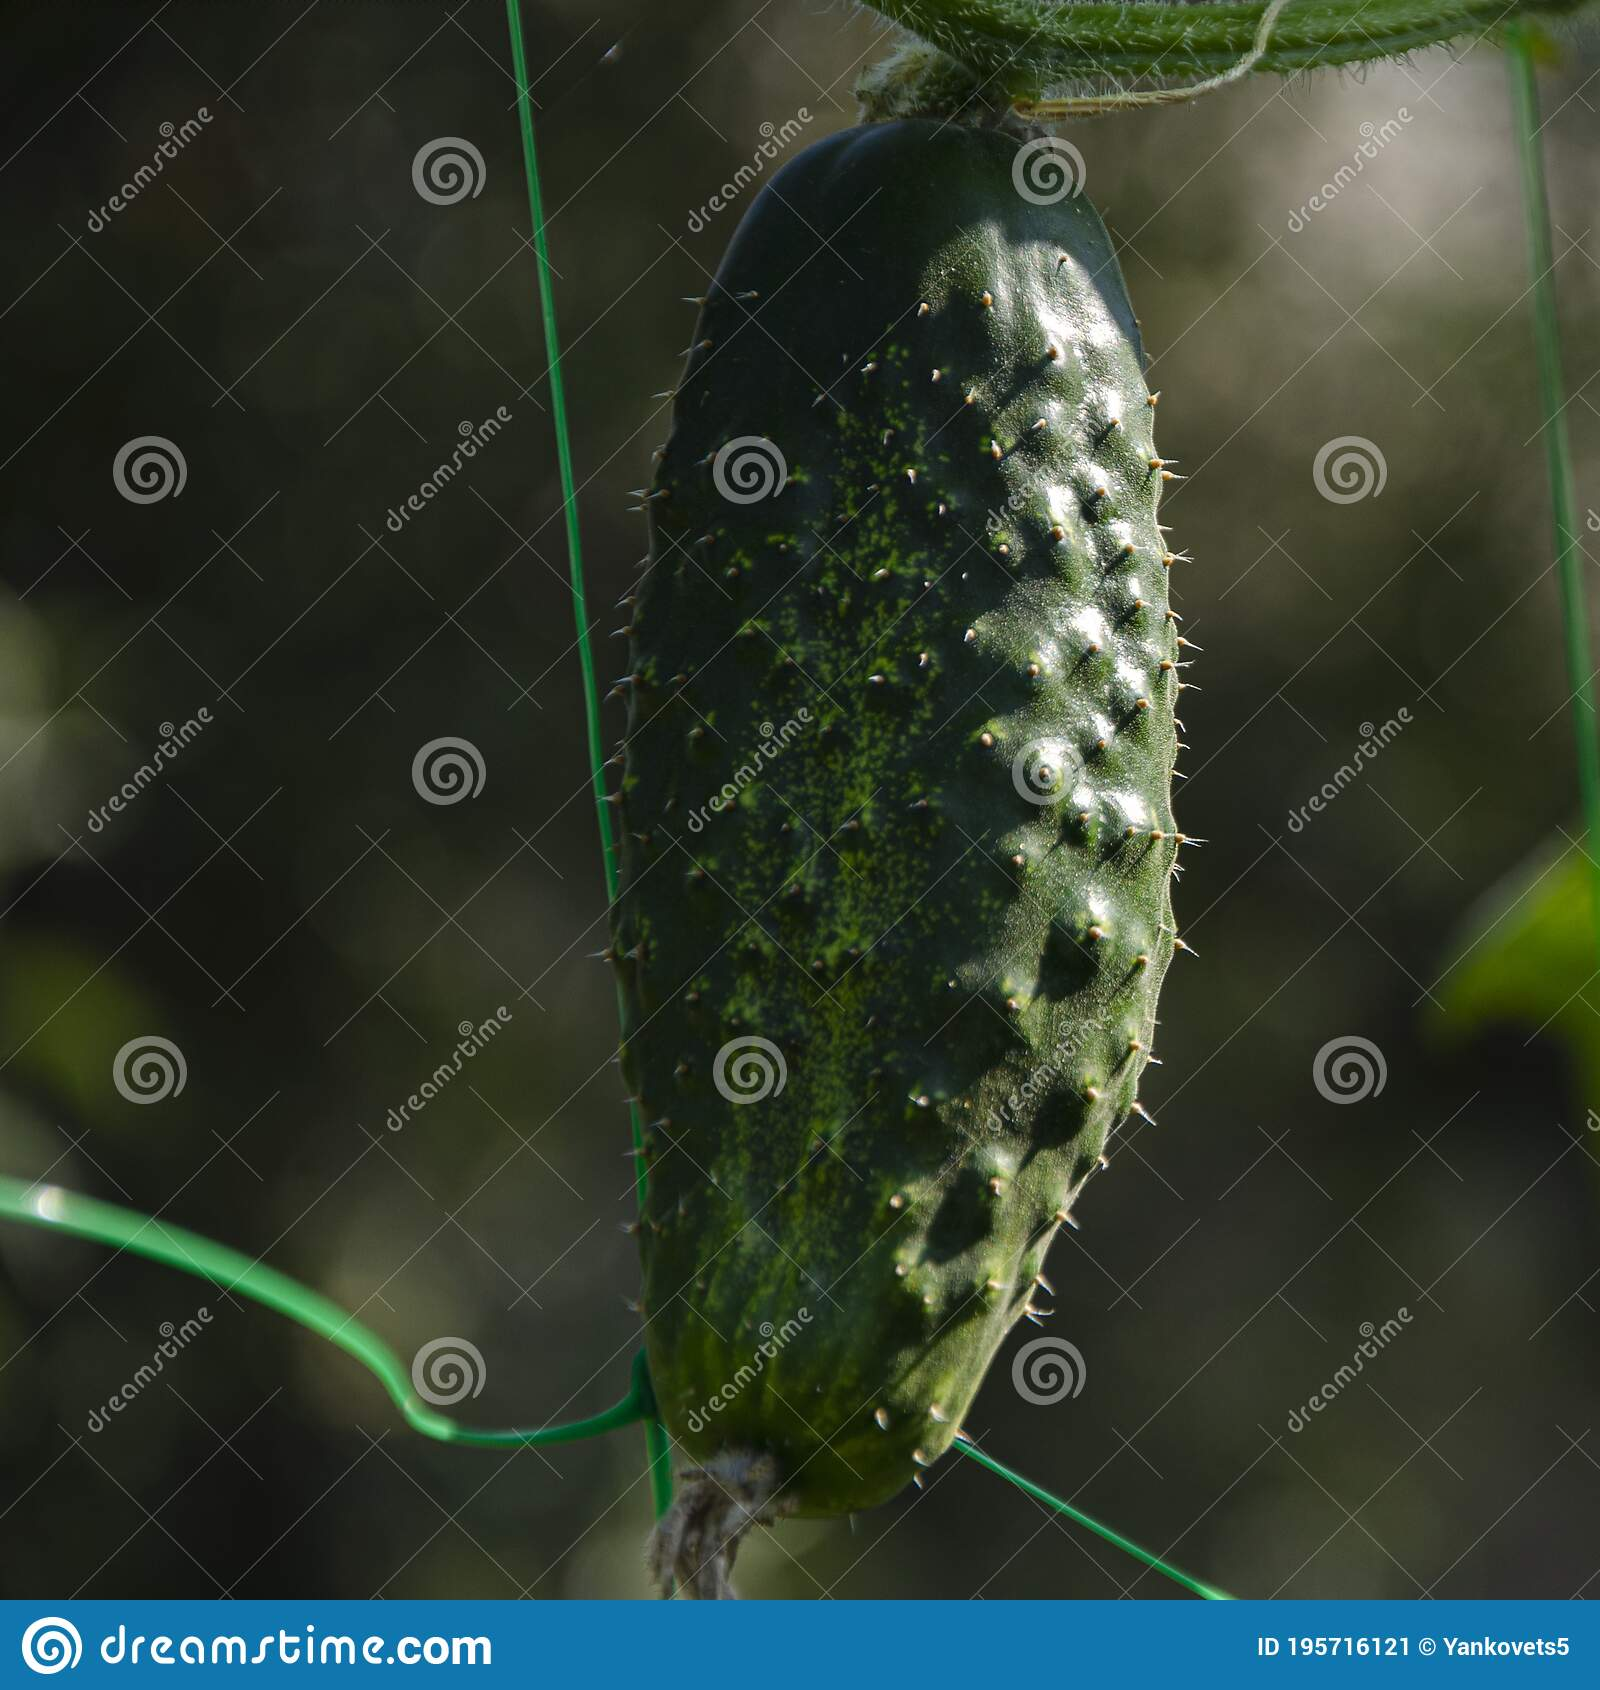 young-green-cucumber-thorns-grows-grid-p